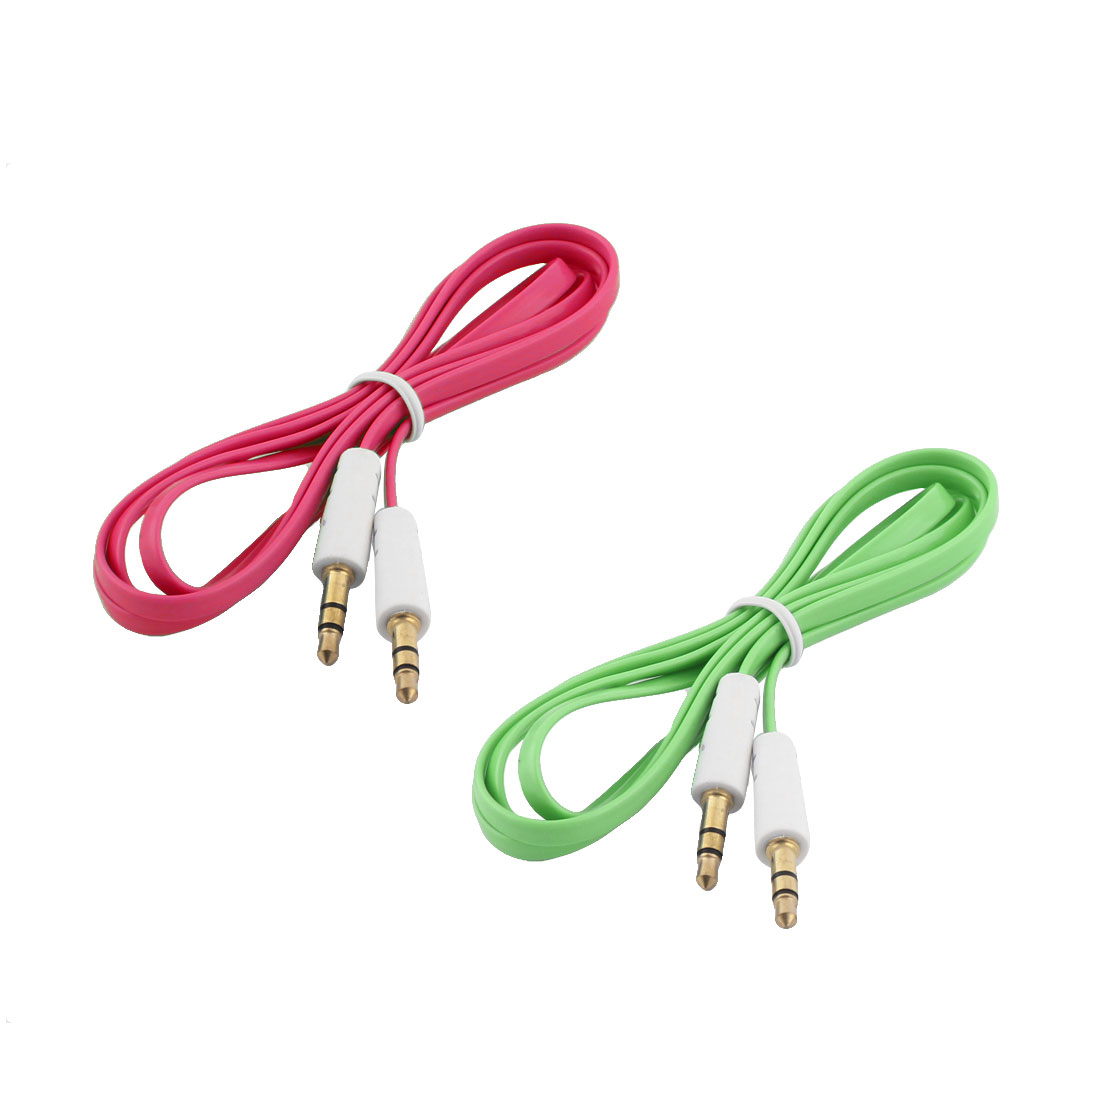 2pcs 3.3ft Plastic 3.5mm Male to Male Outdoor Plug Audio Cable Fuchsia Green